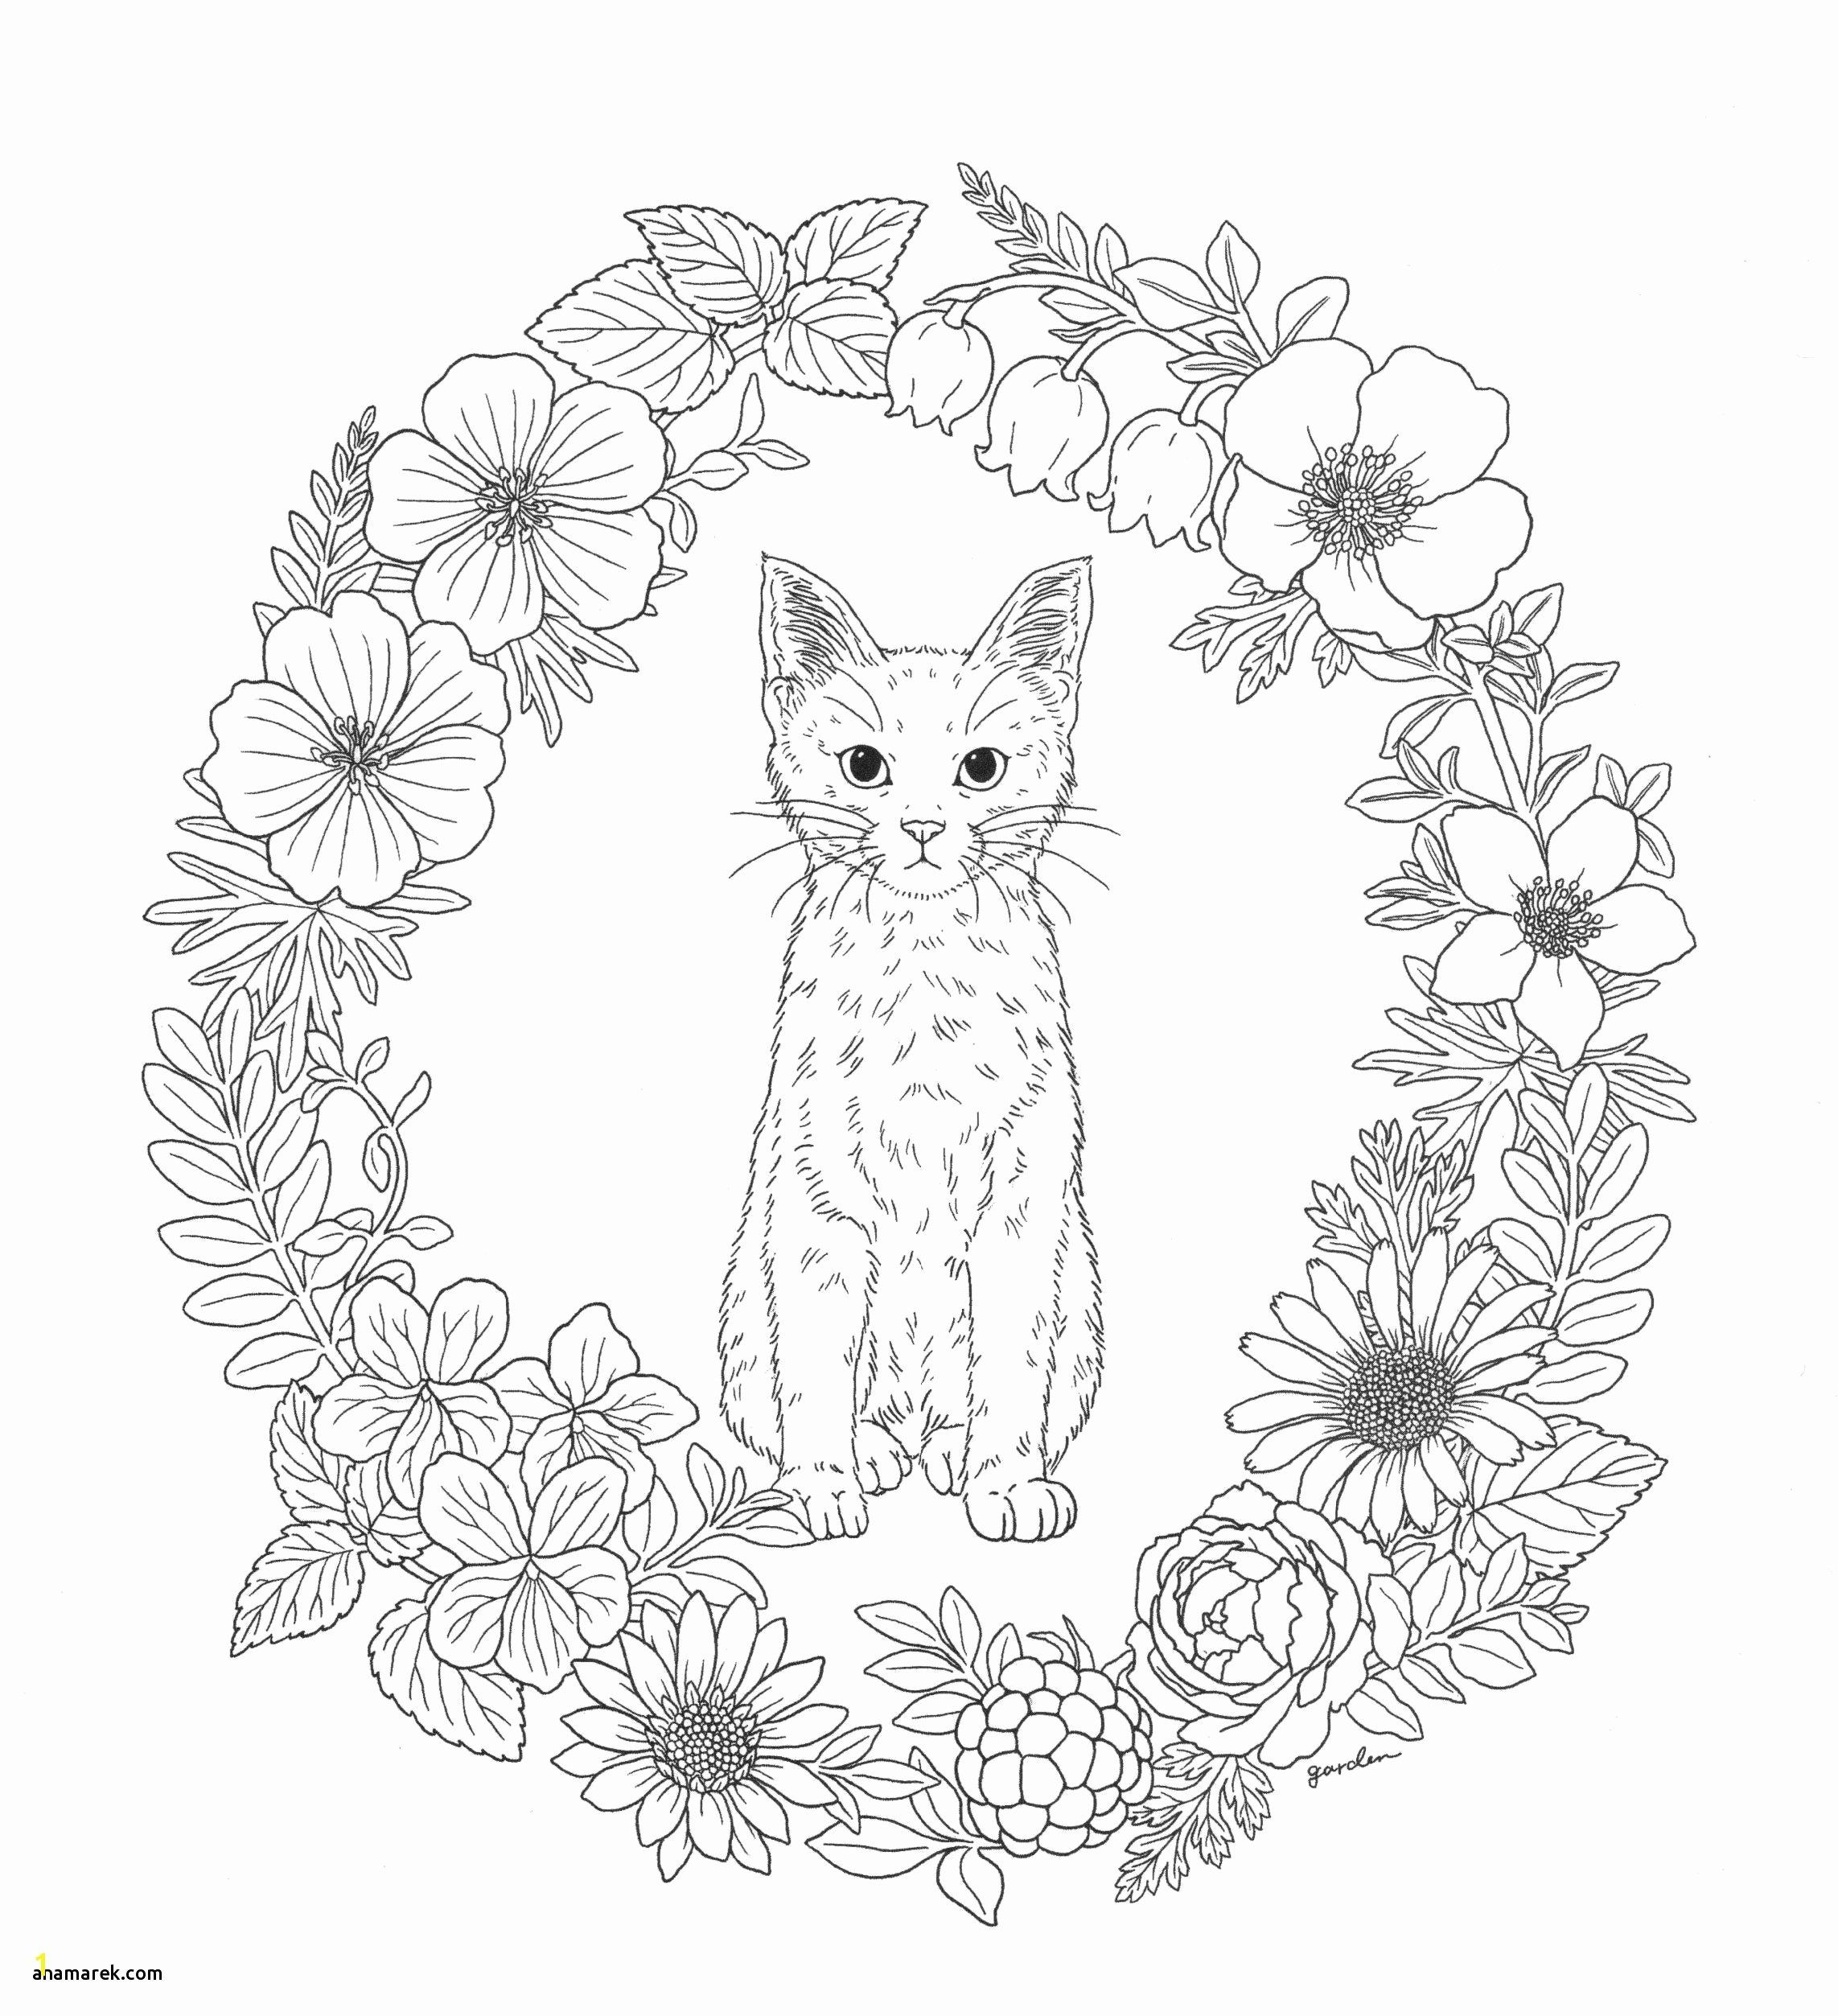 Hard Coloring Pages Printable Free Fresh Coloring Pages Hard Coloringages For Kids Animals With Unicorn Coloring Pages Horse Coloring Pages Cat Coloring Page